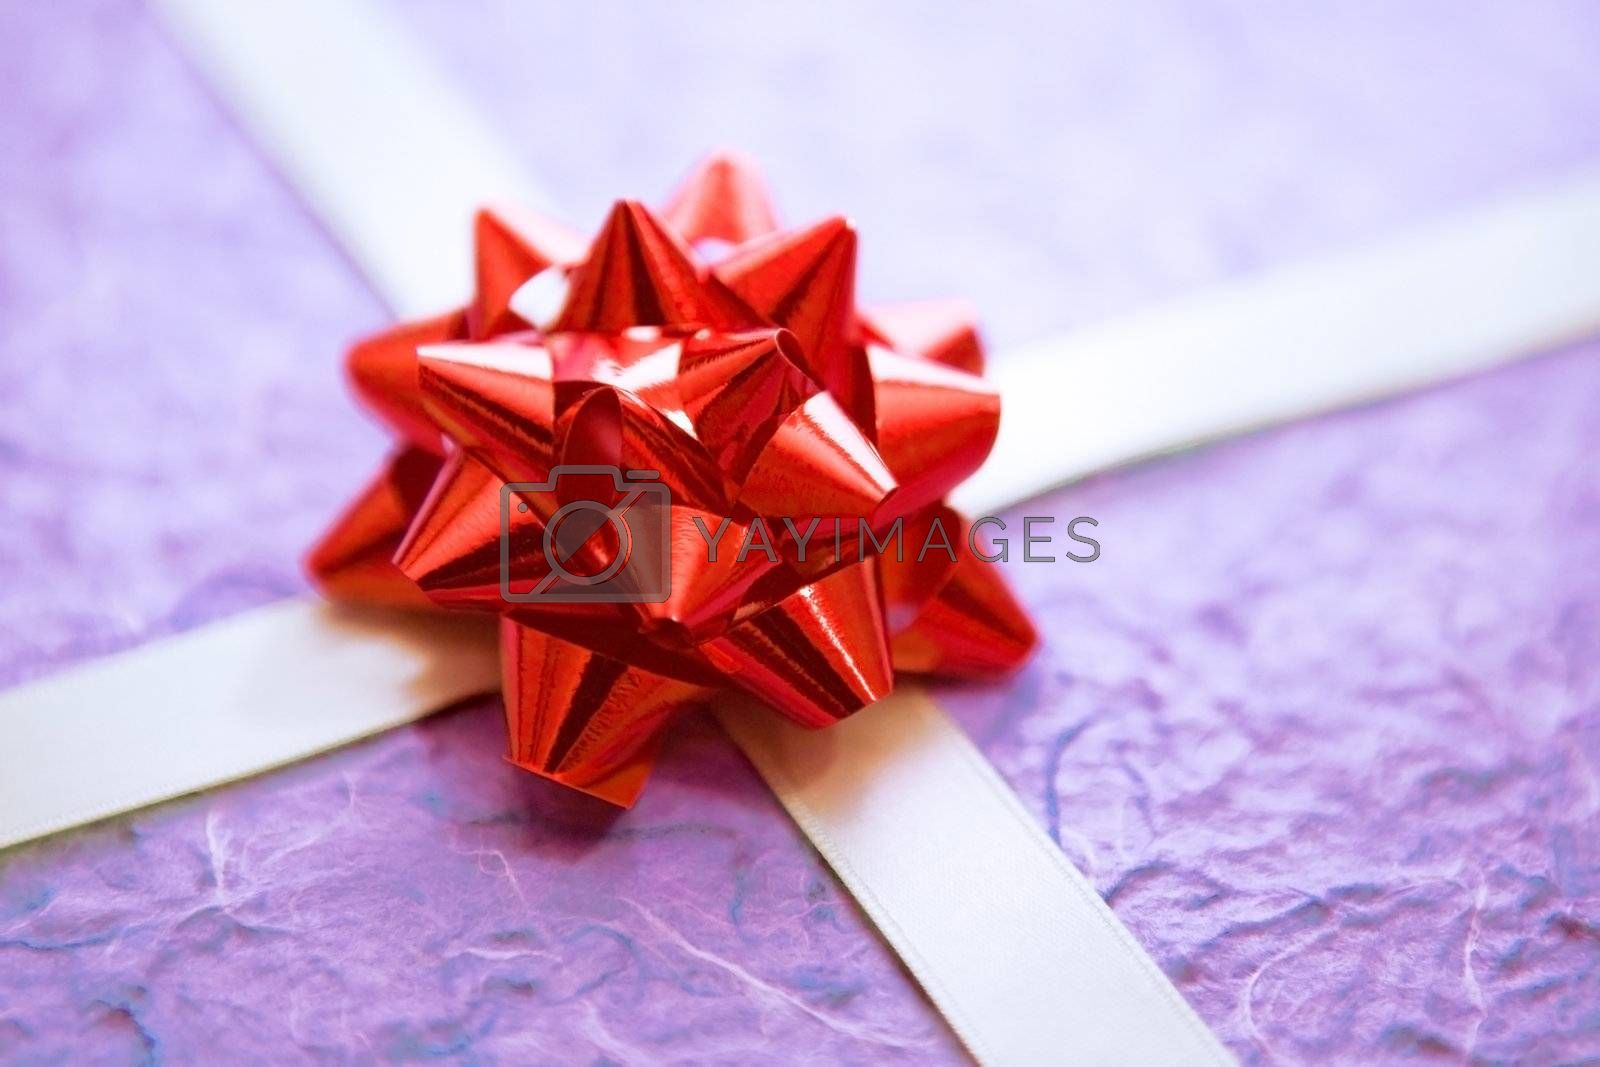 Royalty free image of Gift by Luminis